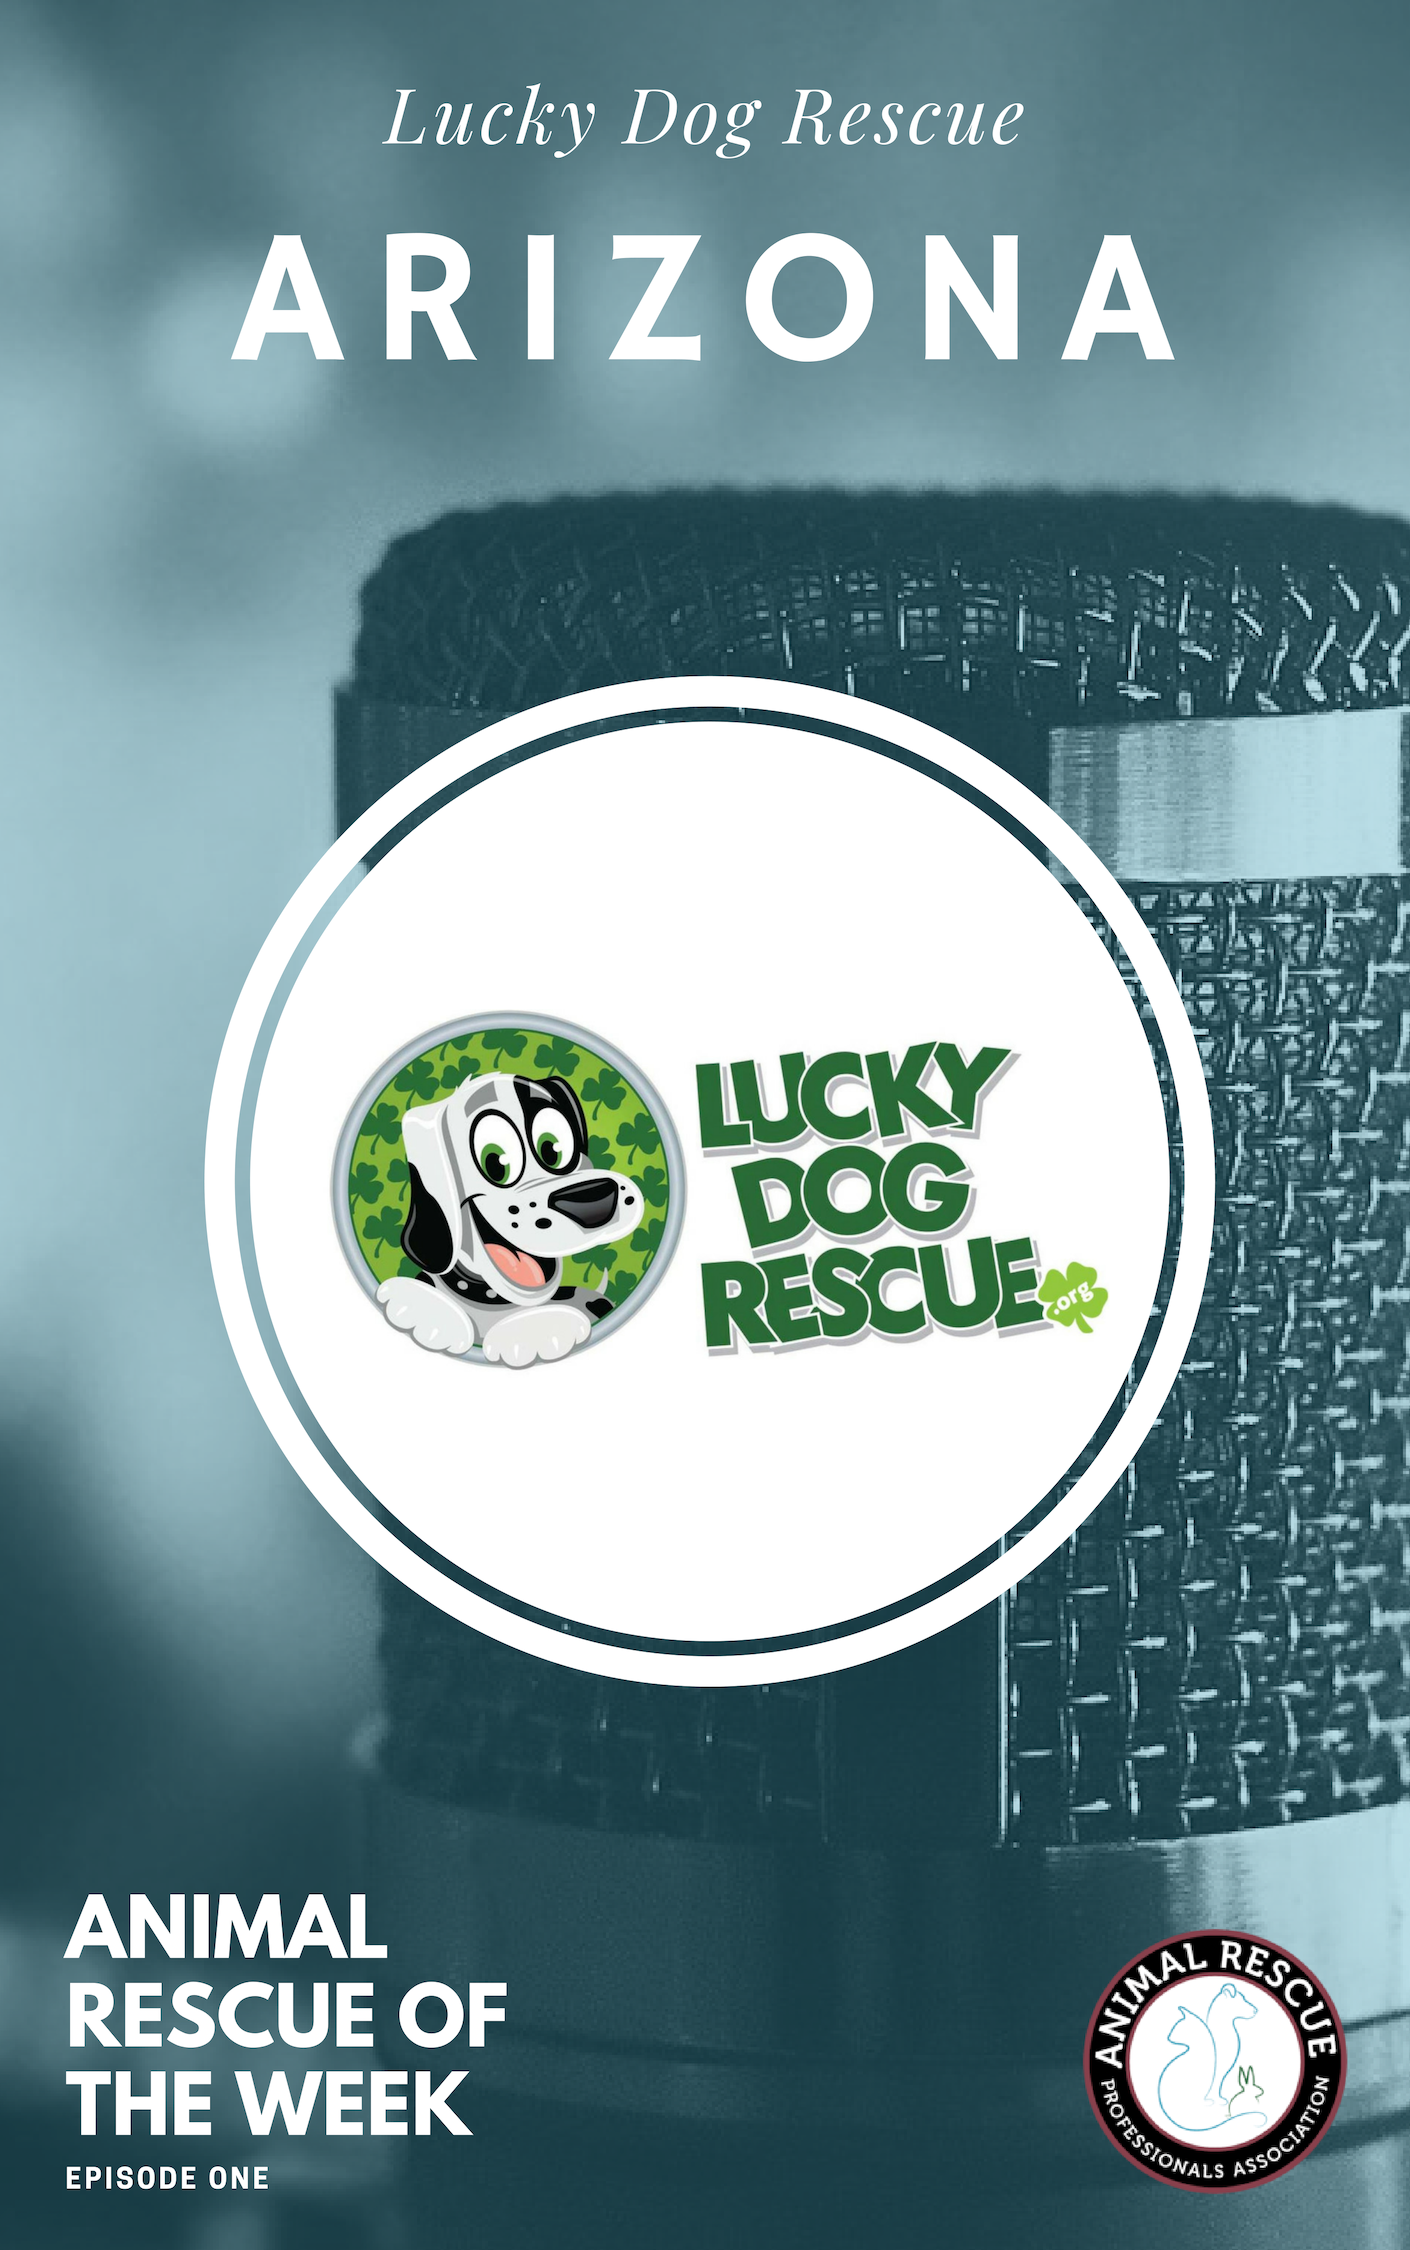 1. Lucky Dog Rescue_AZ_Animal Rescue of the Week